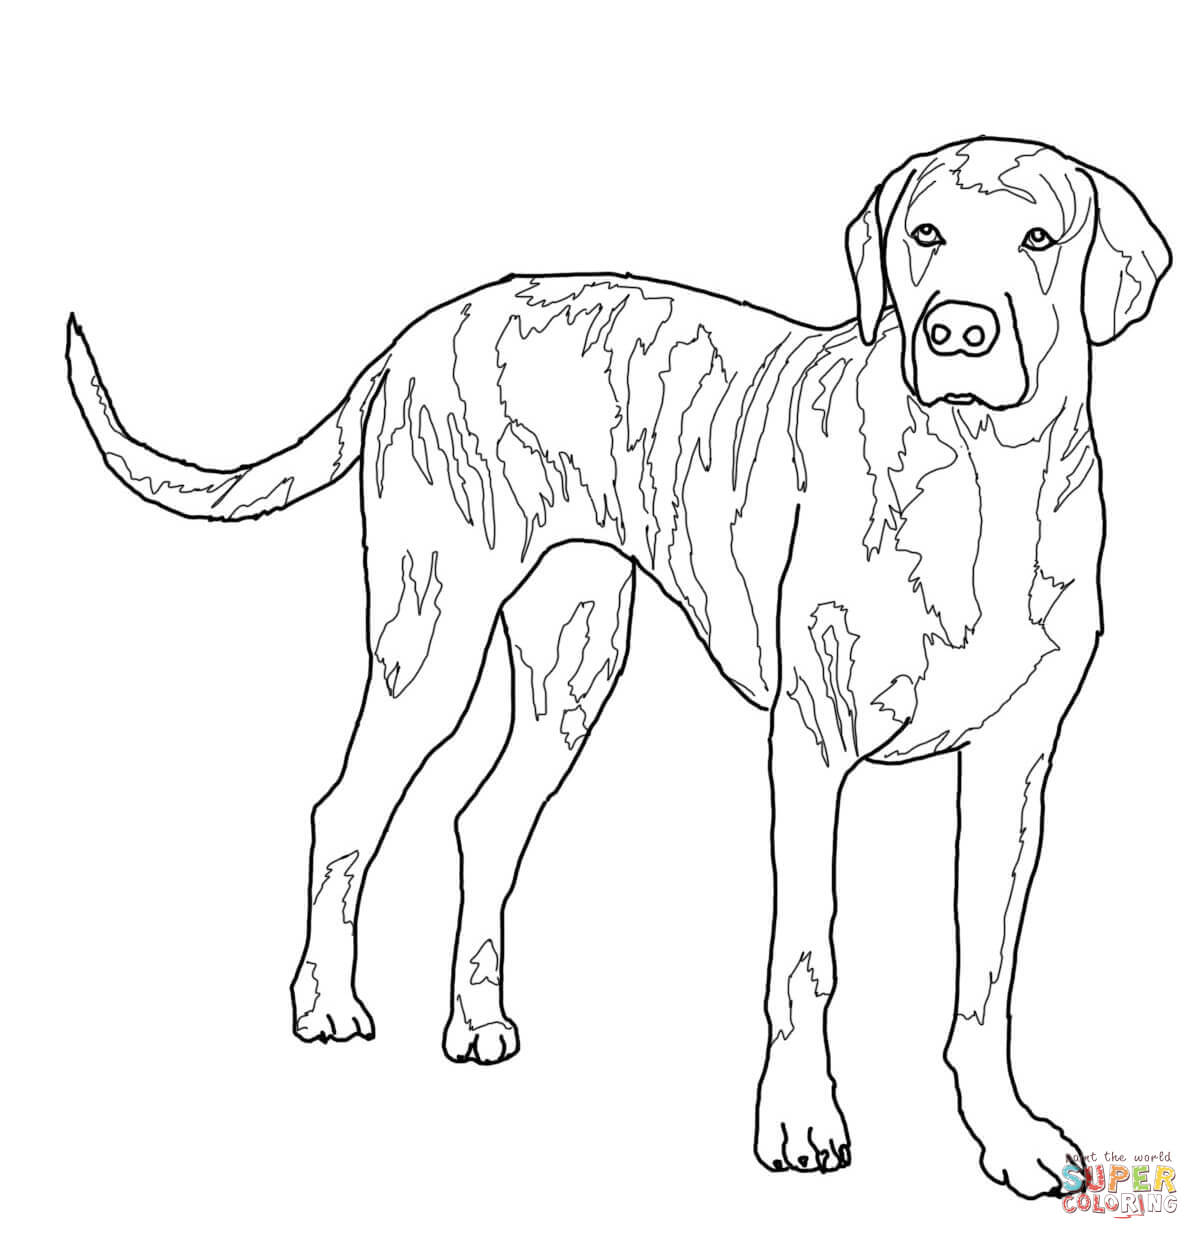 hound dog coloring pages basset hound coloring page free printable coloring pages coloring hound pages dog